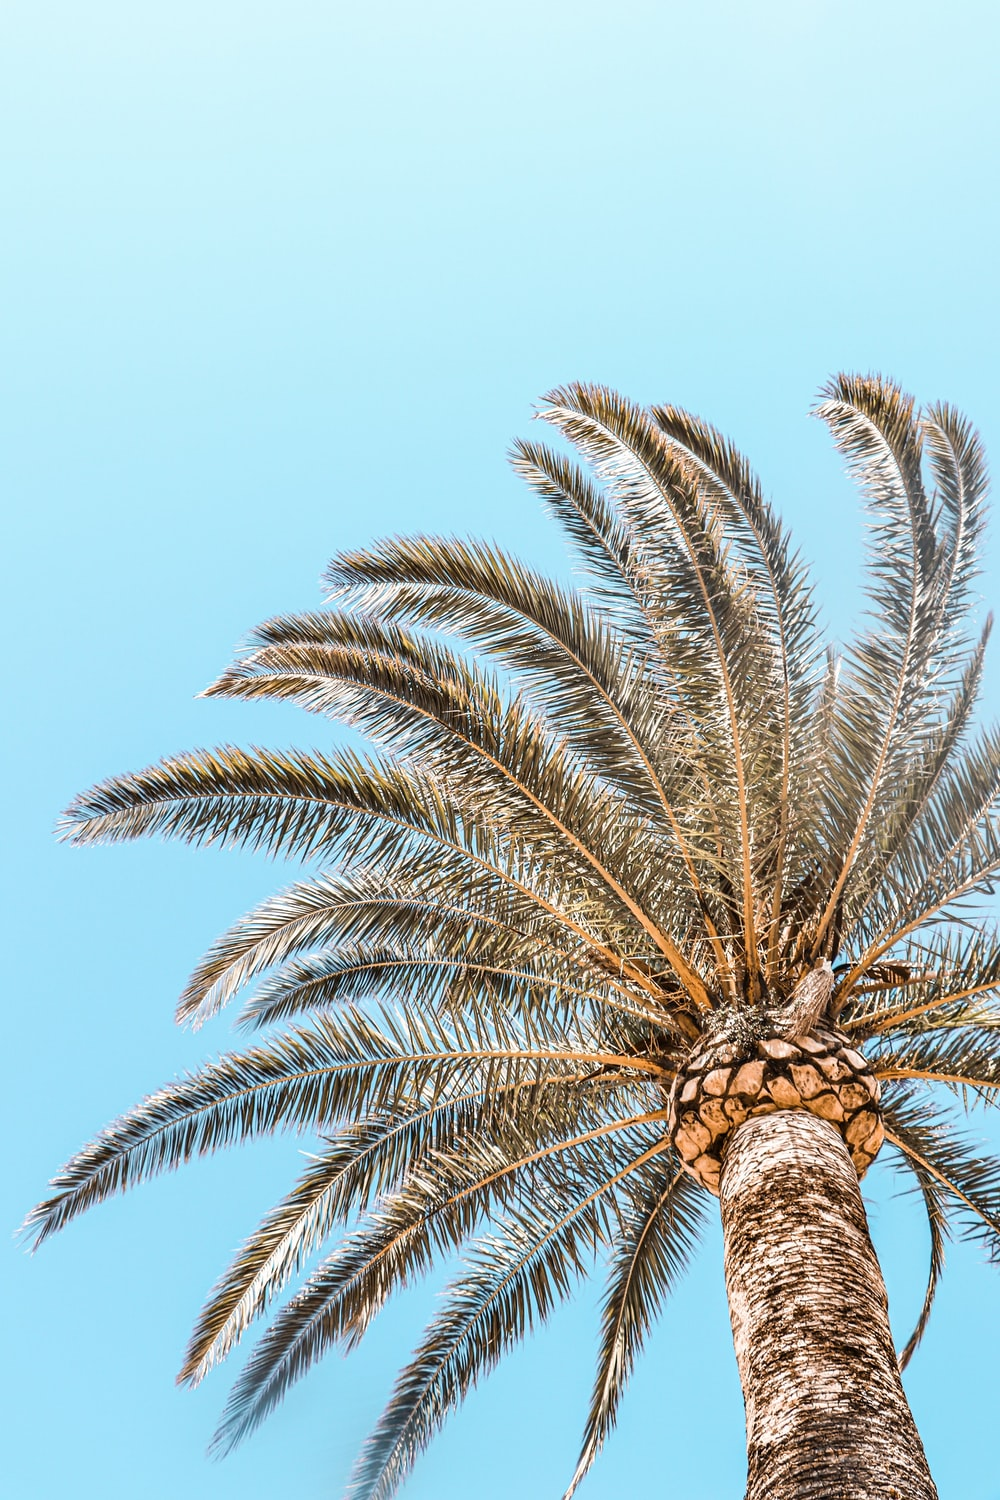 low-angle photography of a green palm tree under a calm blue sky